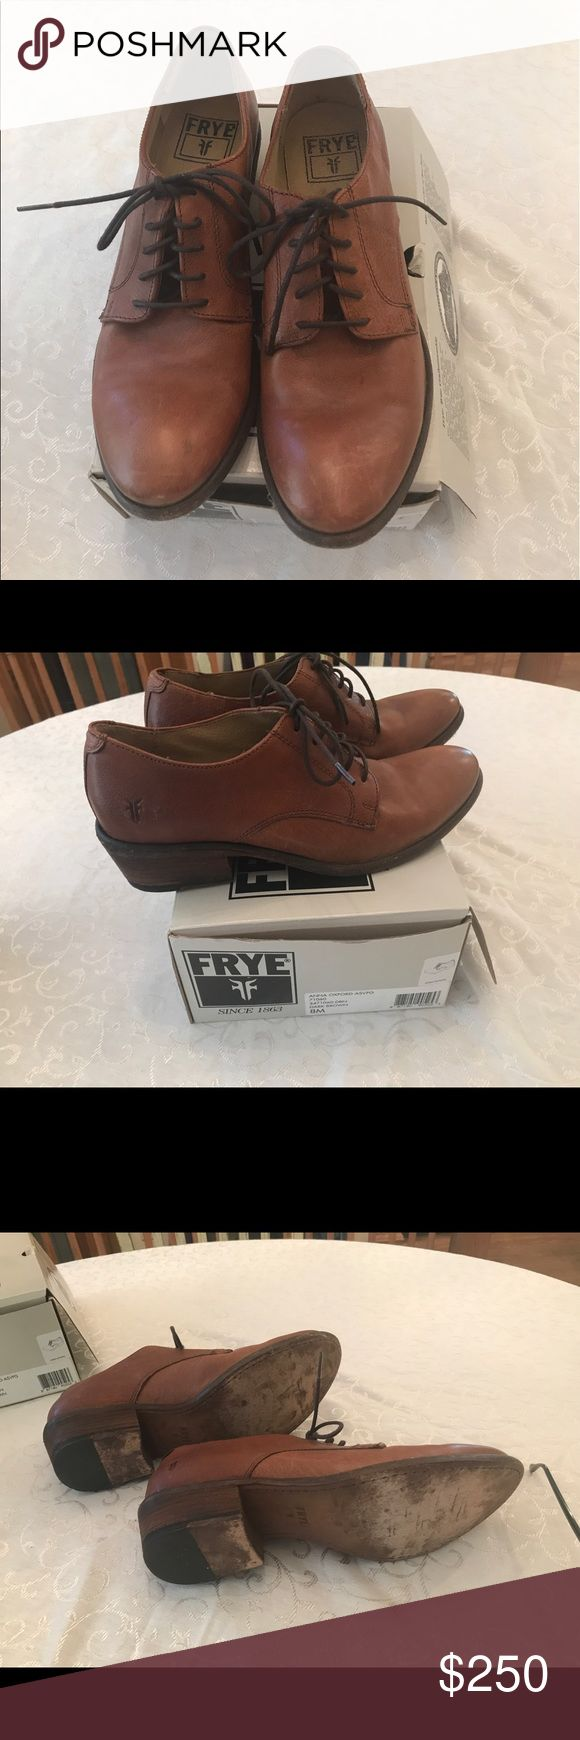 Brown Frye Oxfords, size 8 Worn 3 times. $250. Medium brown Frye Oxfords, size 8 Beautiful shade of brown. By Frye so you know they're made well. Worn fewer than 5 times (maybe 3). Scuff marks on soles is where I rubbed them on concrete so they wouldn't be slippery. Paid at least $350 for them. Price: $250. Frye Shoes Flats & Loafers